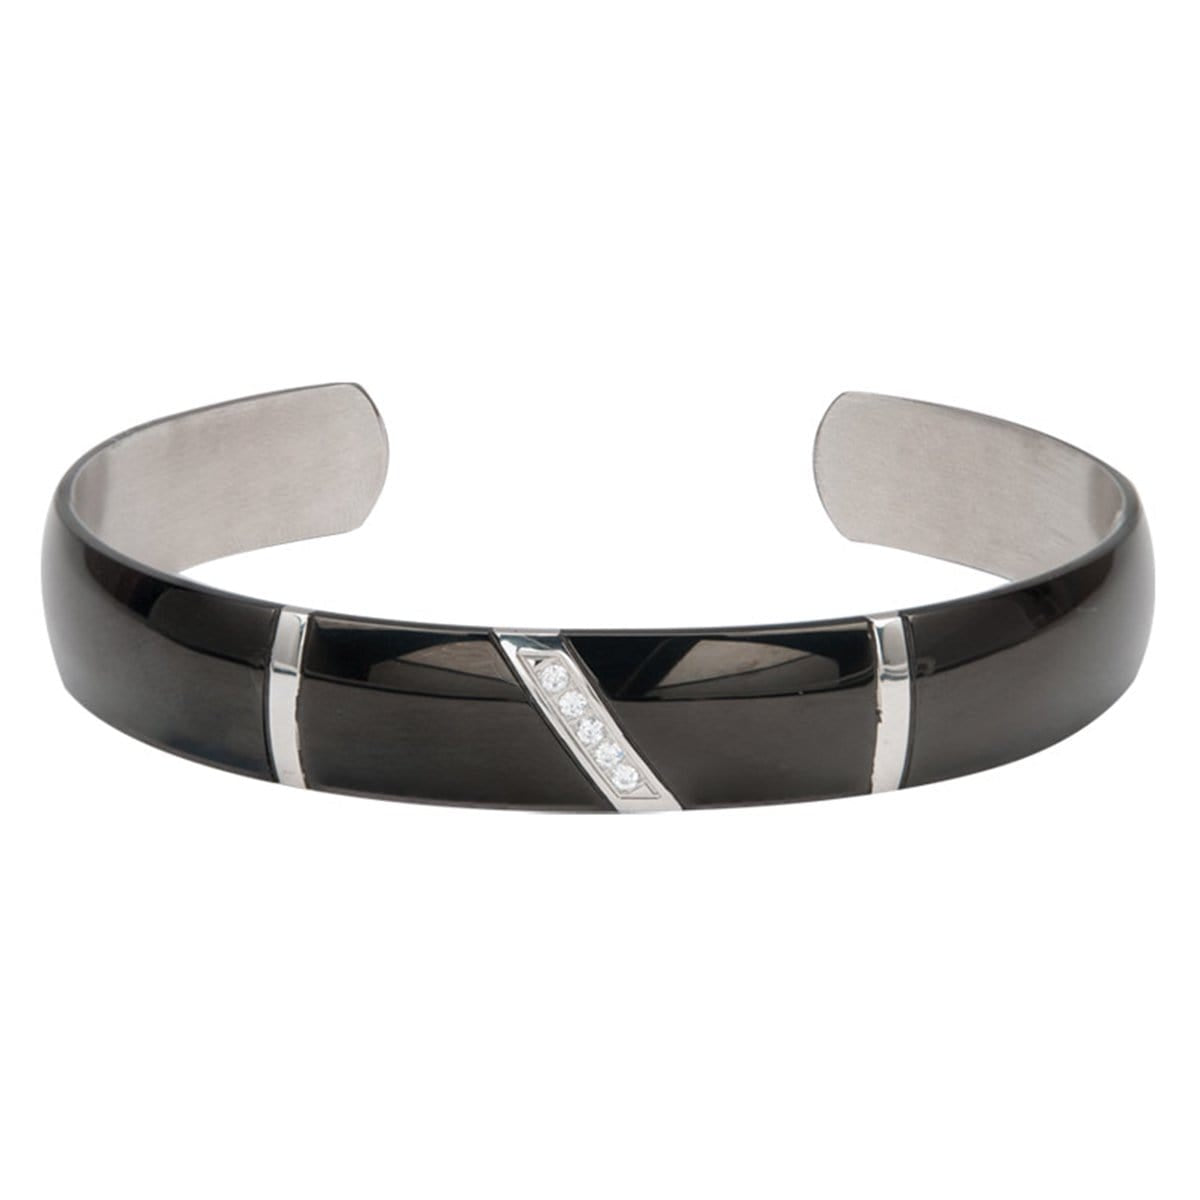 Black & Silver Stainless Steel CZ Detail Adjustable Bangle Cuff - Inox Jewelry India